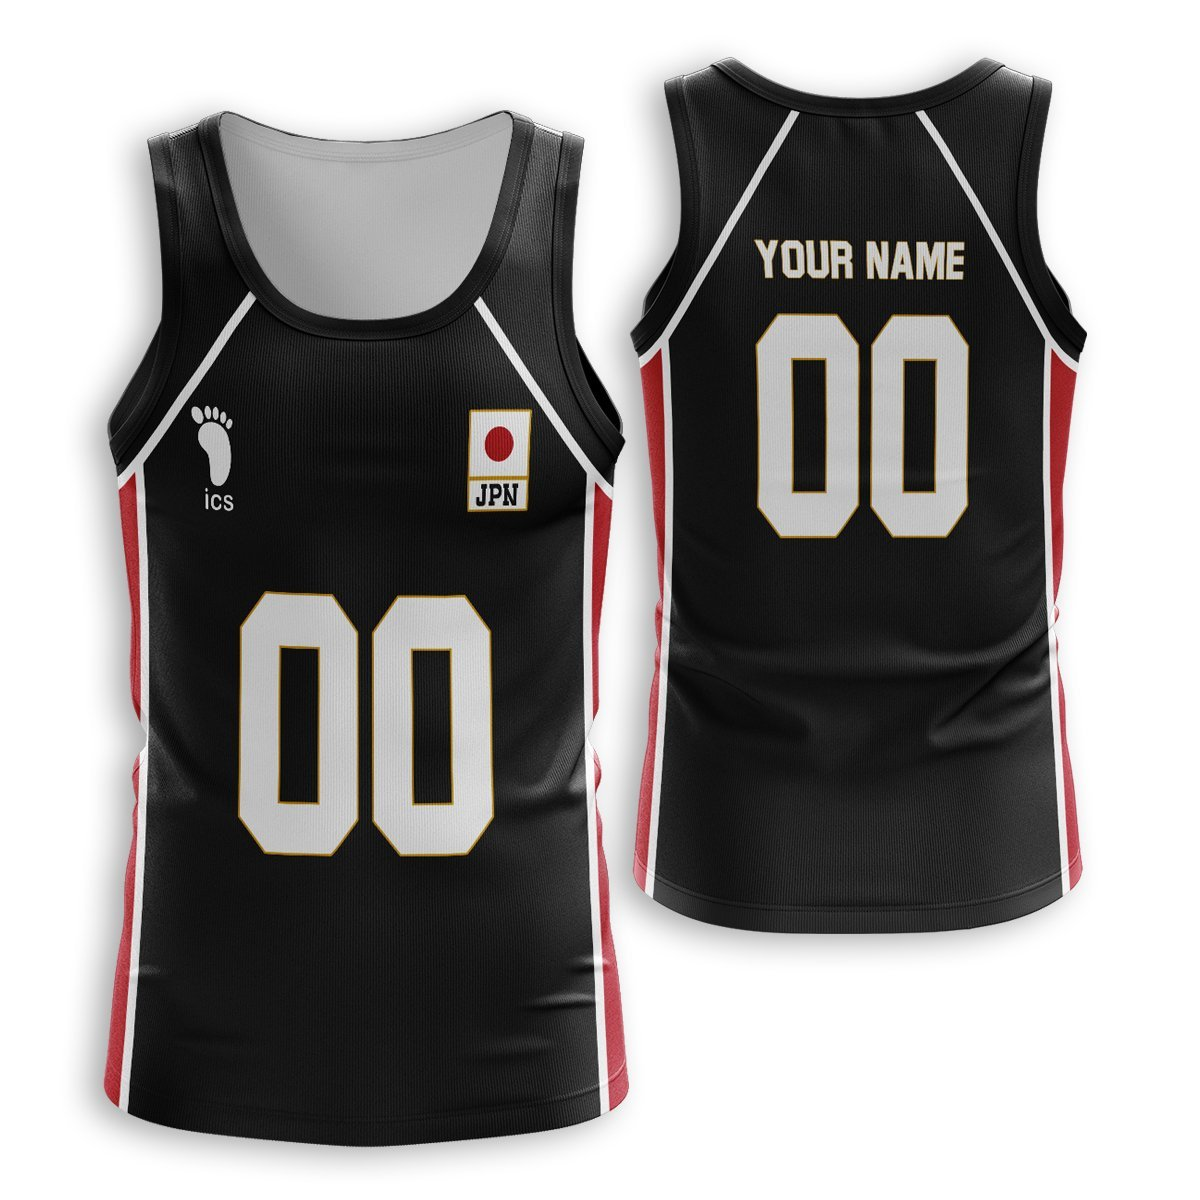 Personalized Haikyuu National Team Libero Unisex Tank Tops FDM3107 S Official Anime Swimsuit Merch